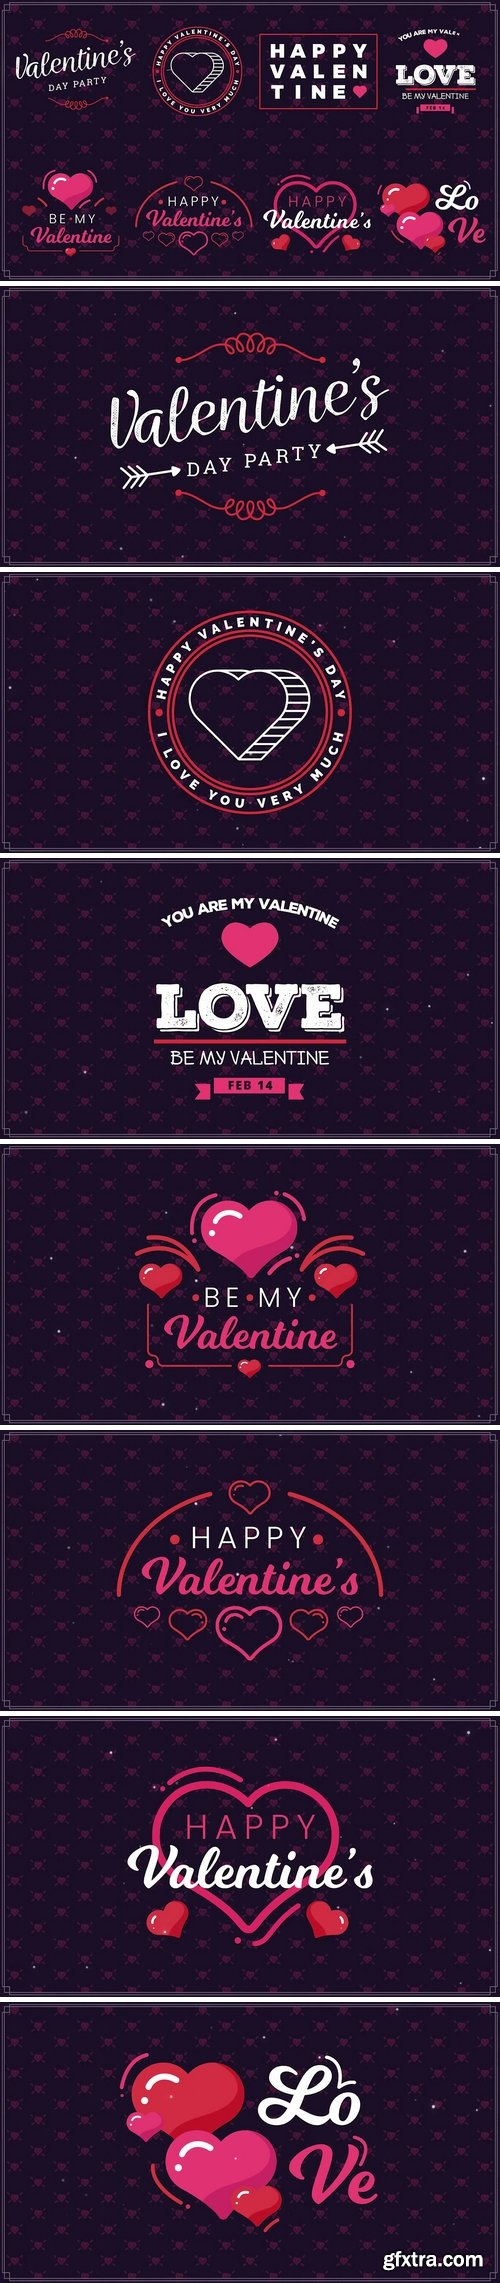 MotionArray - Valentine\'s Day II After Effects Templates 64173